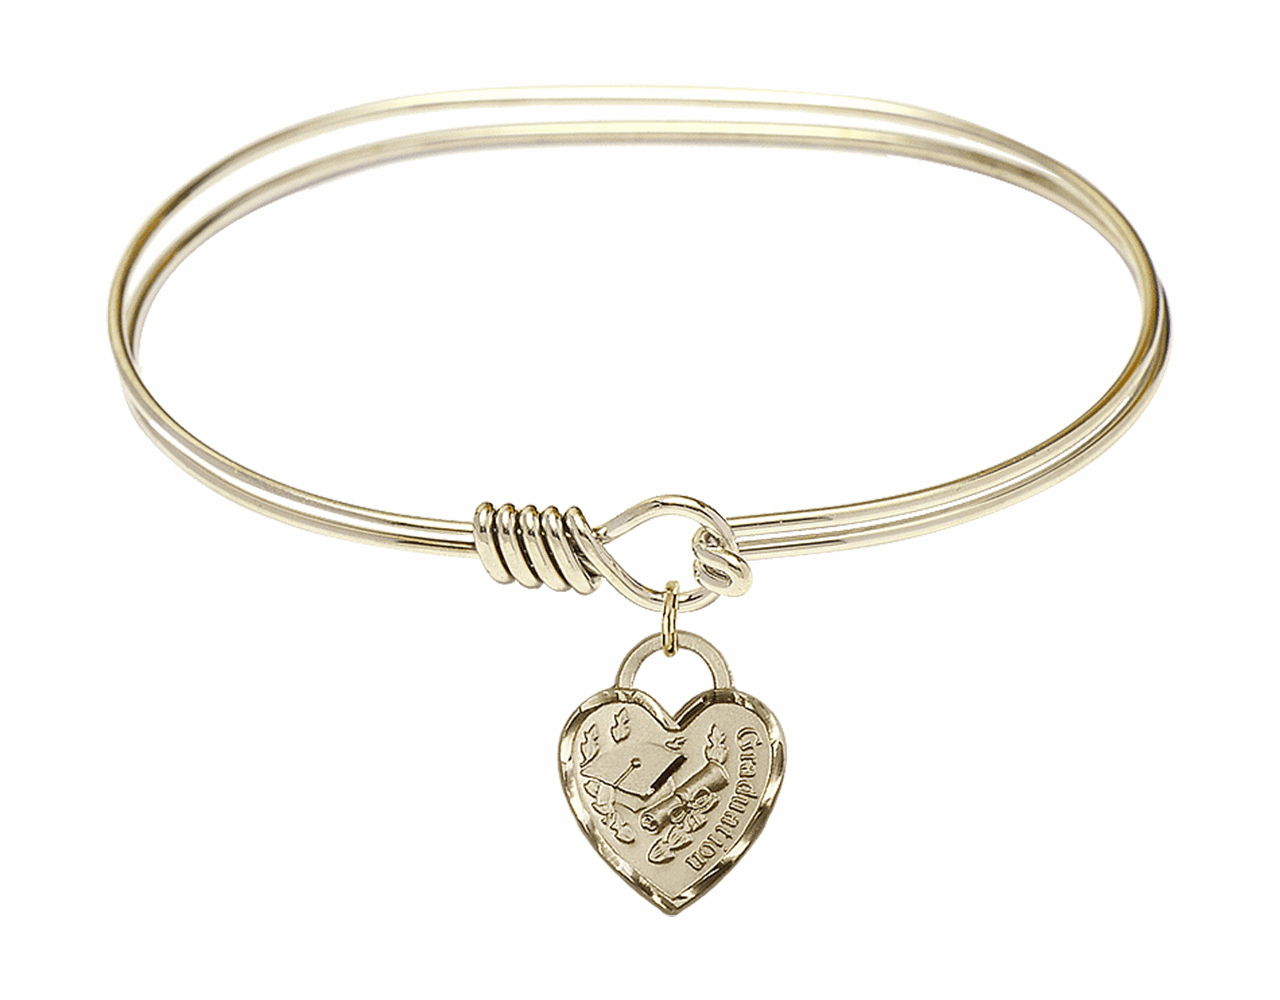 Round Eye Hook Bangle Bracelet w/Graduation Heart Charm by Bliss Mfg